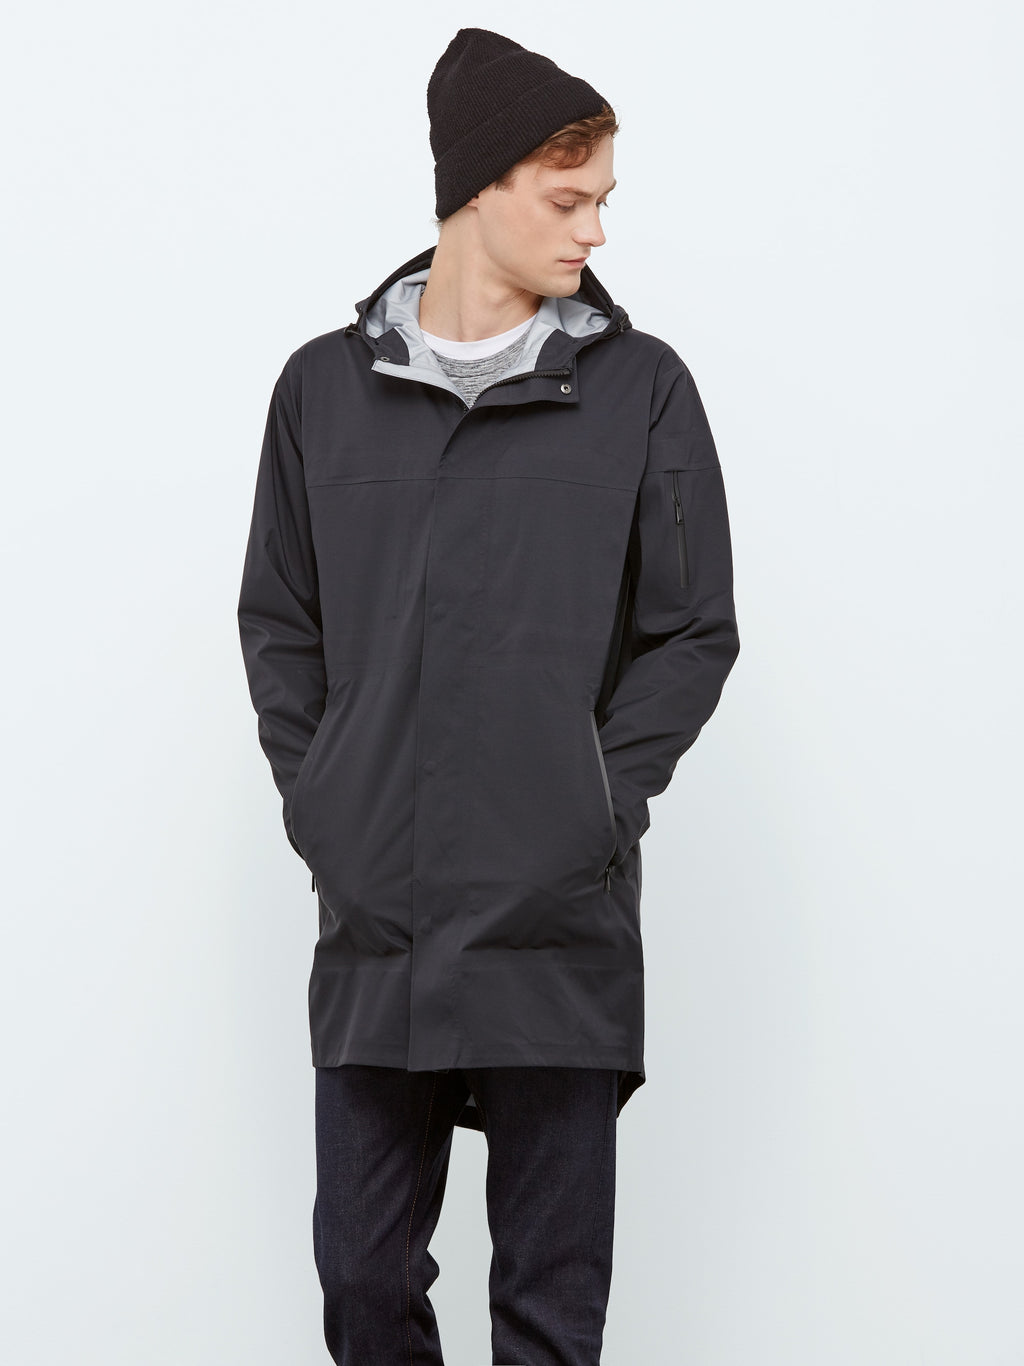 State Concepts - Waterproof Triple Torrent Fishtail Parka - Black - Guys